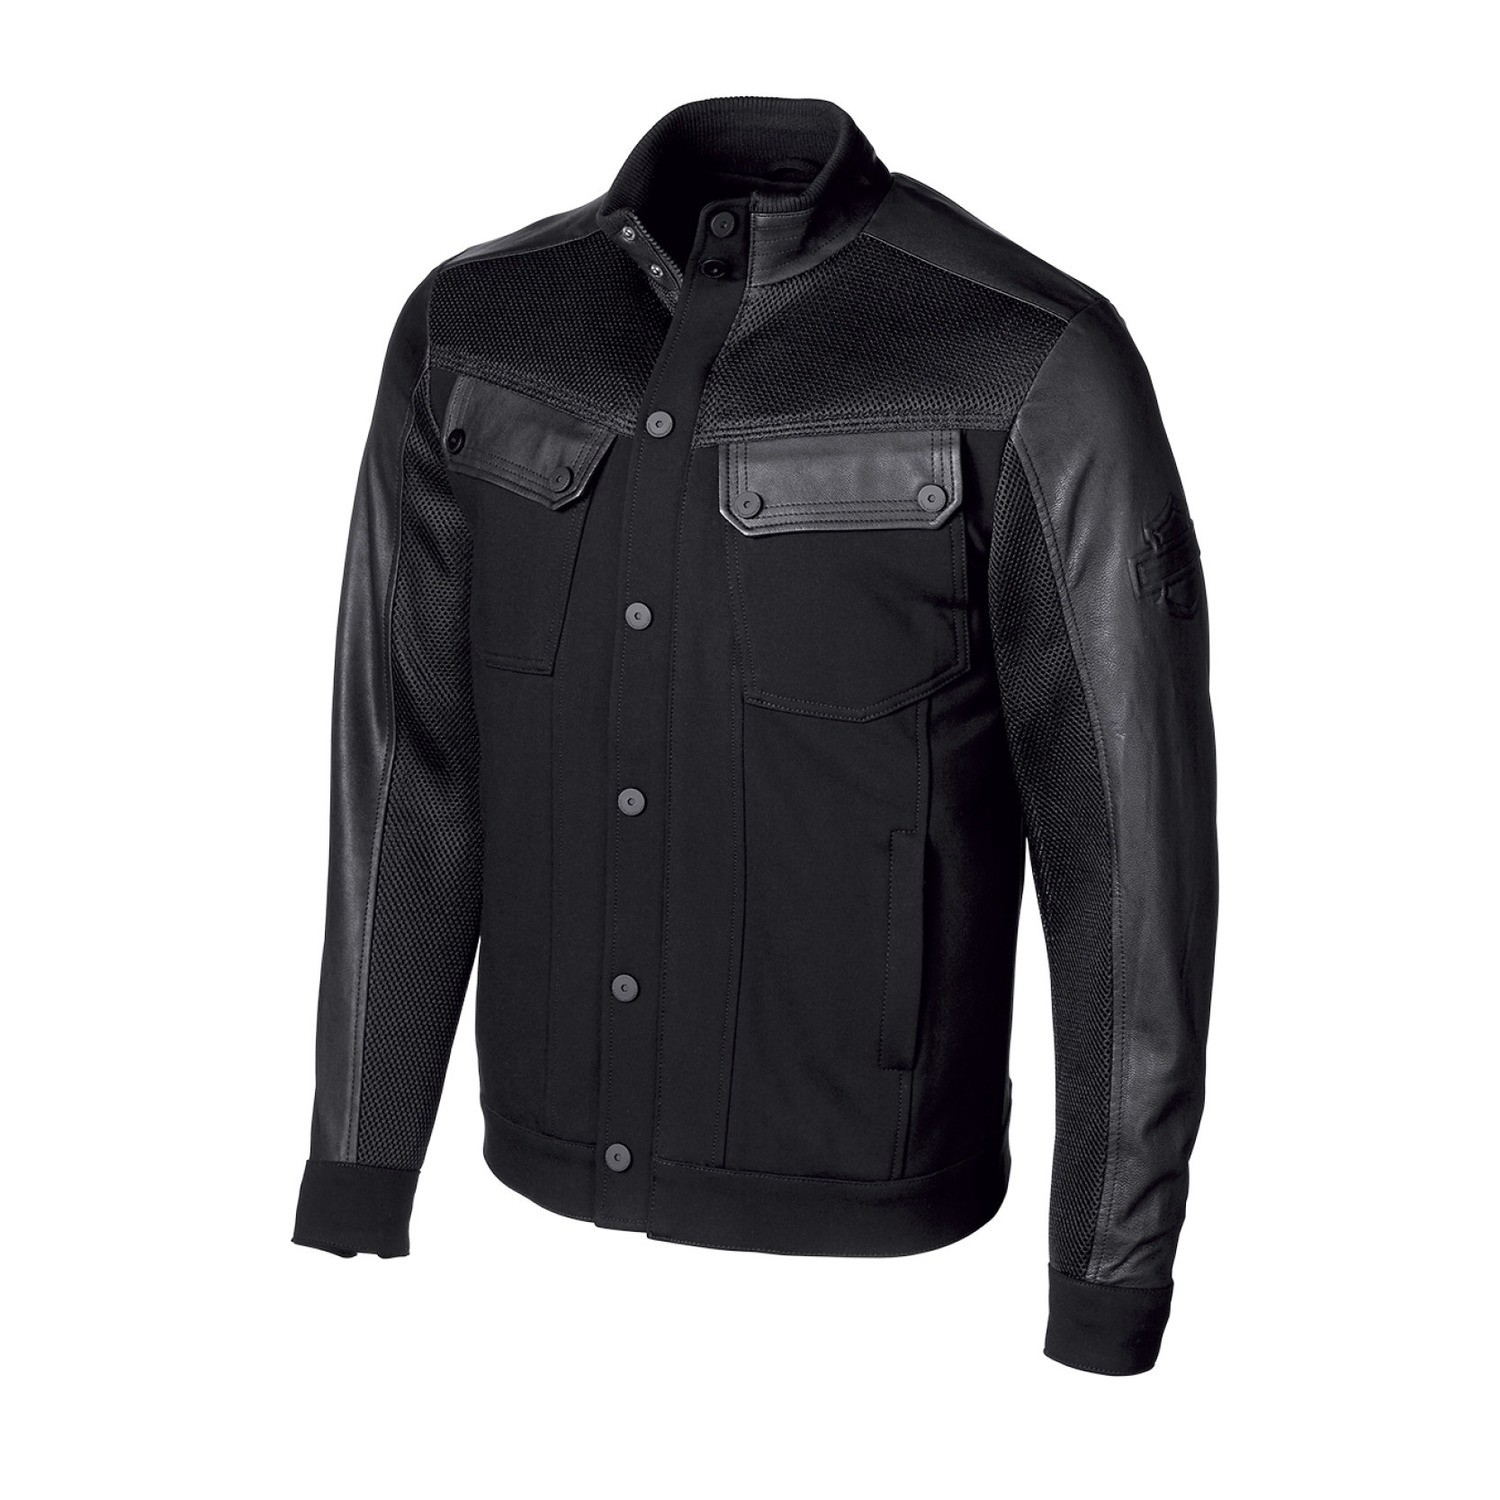 Jacket Men H-D® Moto Textile Mixed Media Slim Fit Casual